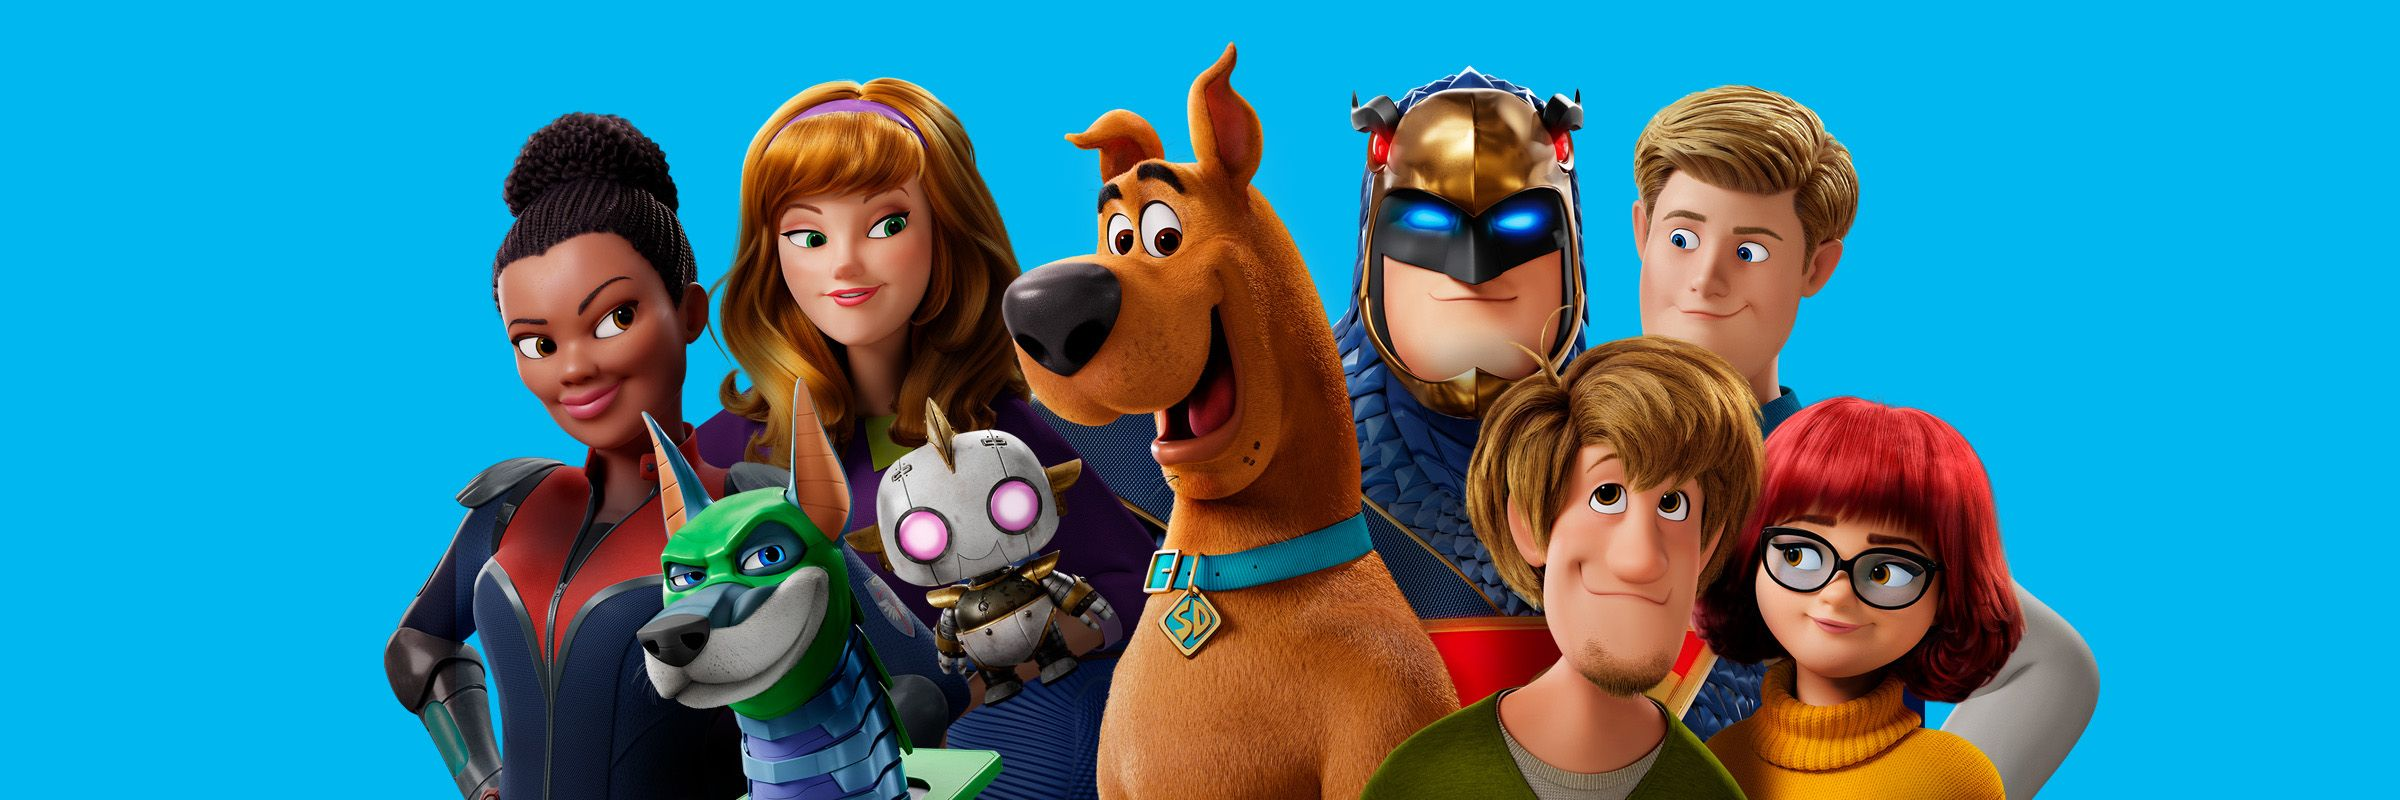 Zoiks! Scoob! Film Proves Scooby-Doo Has Really Gone To The Dogs